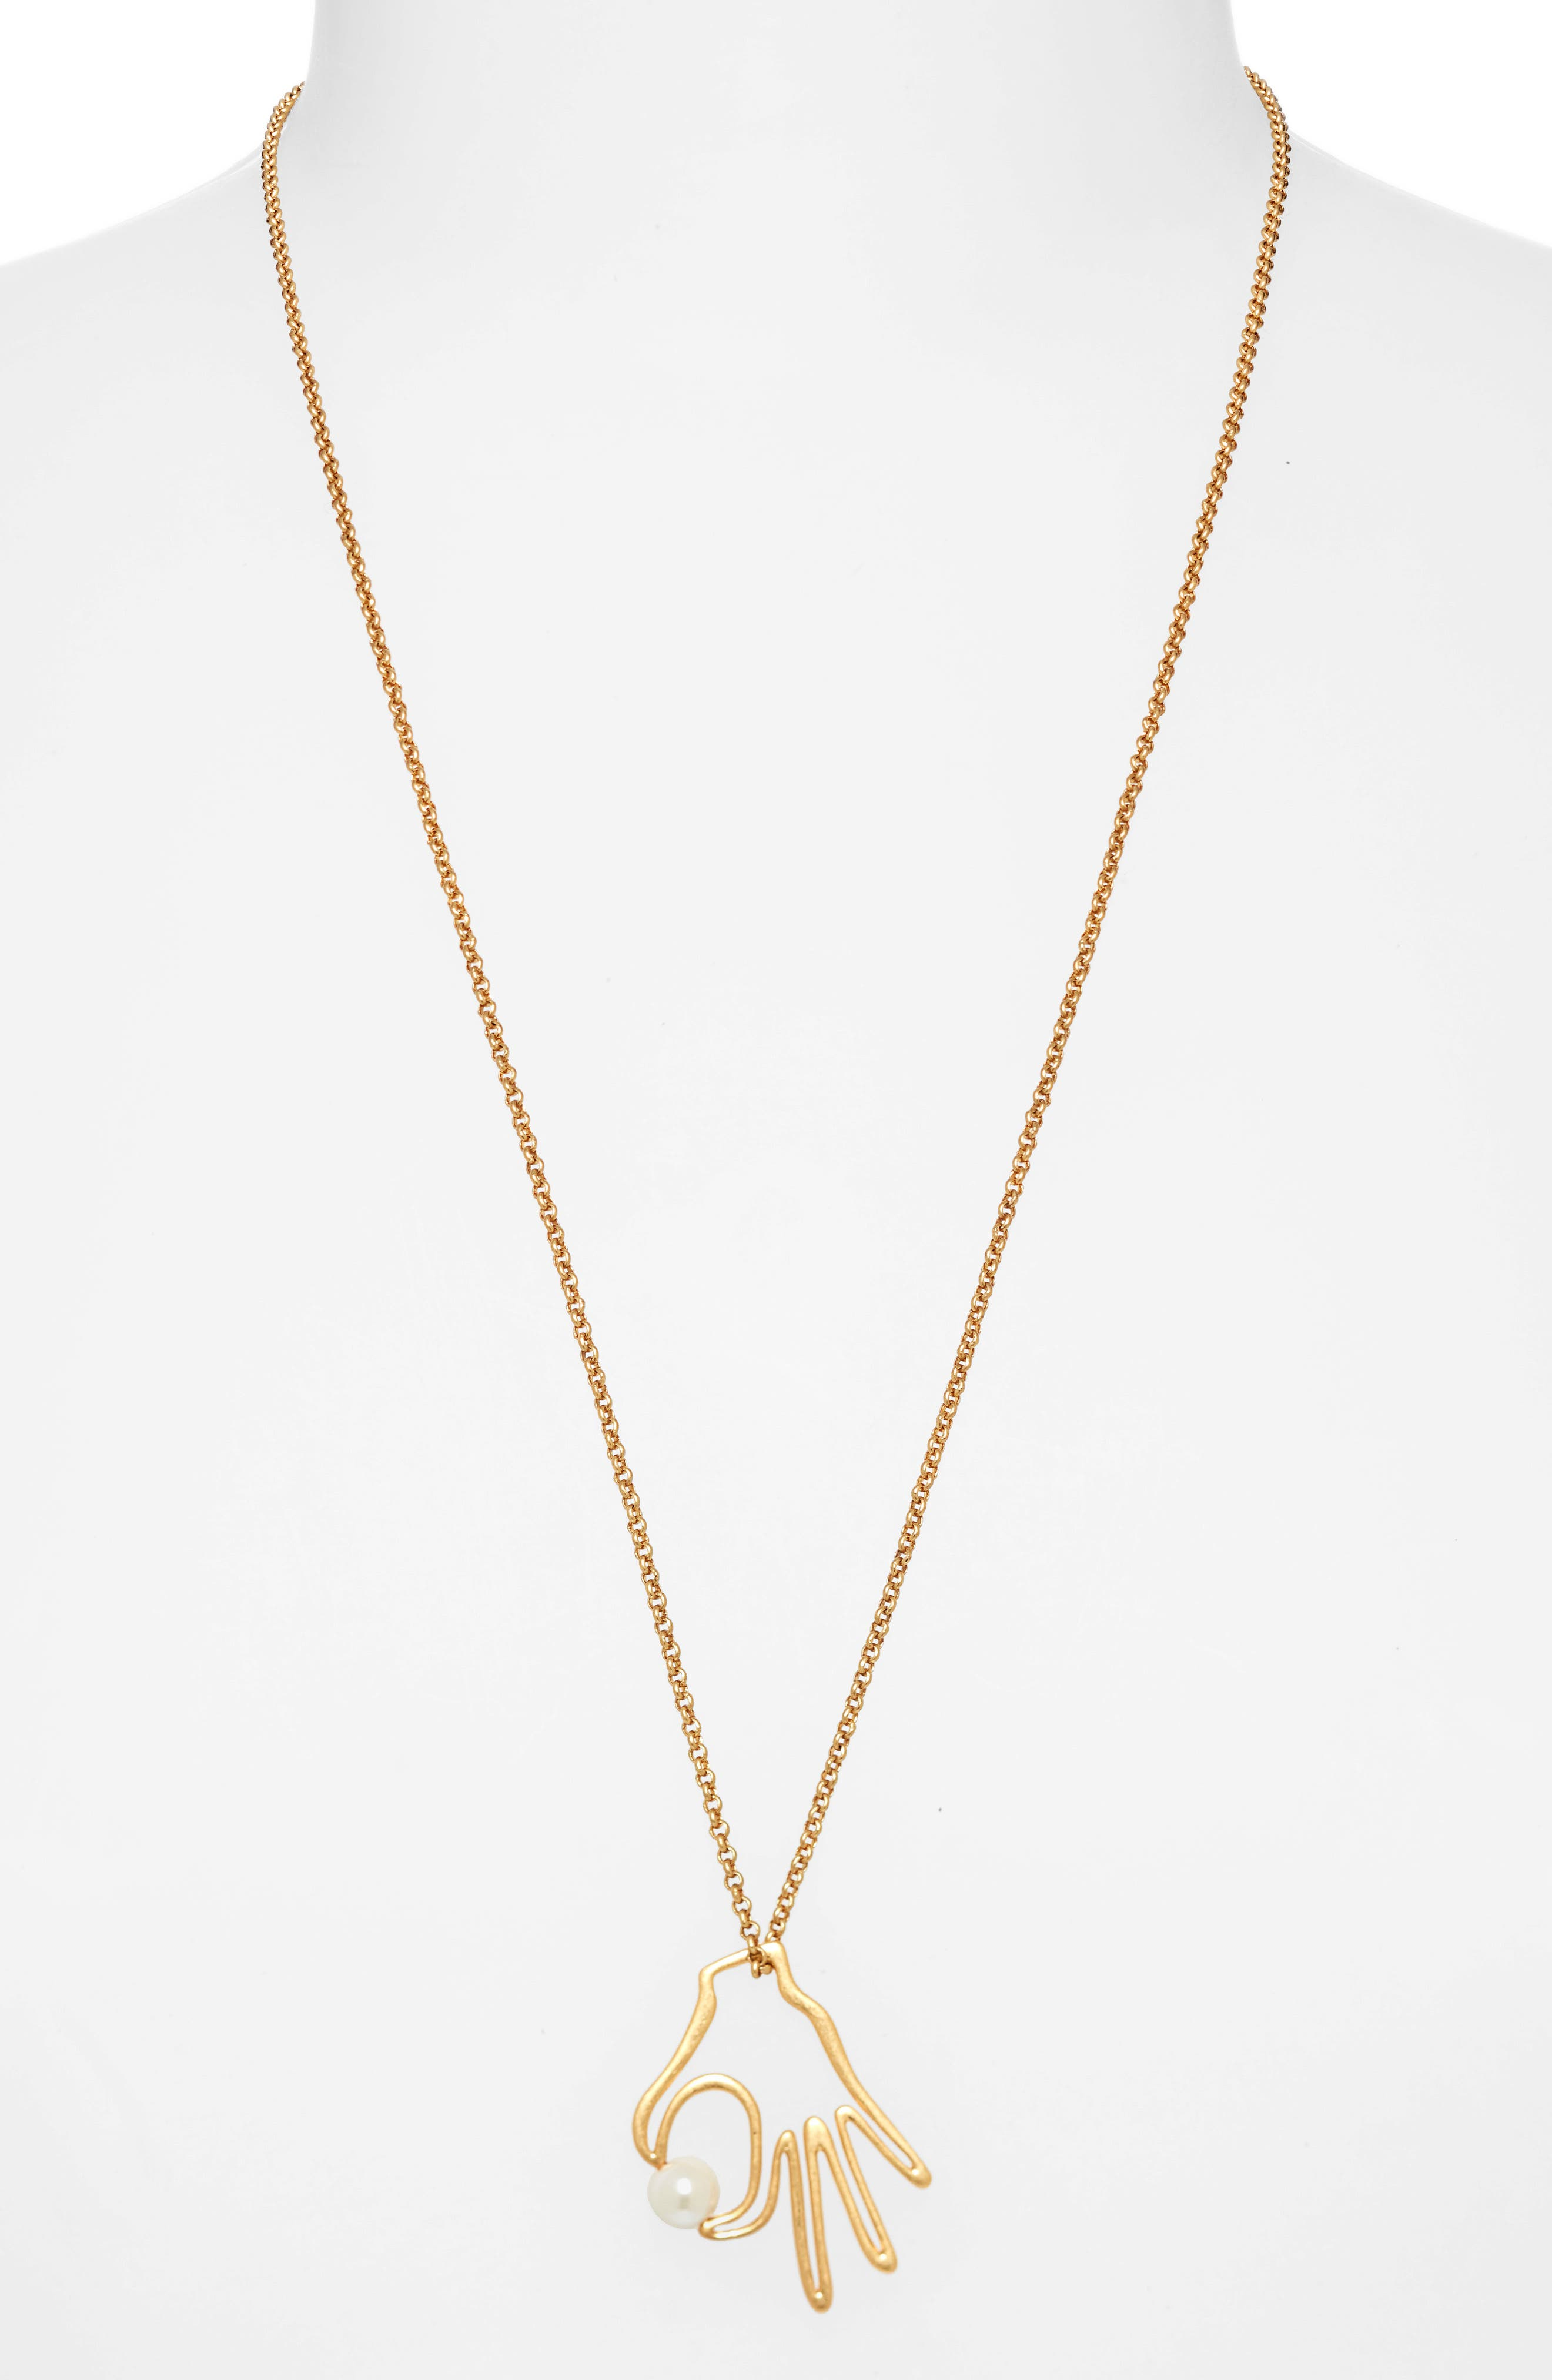 MADEWELL, Hand Jive Pendant Necklace, Alternate thumbnail 2, color, 710